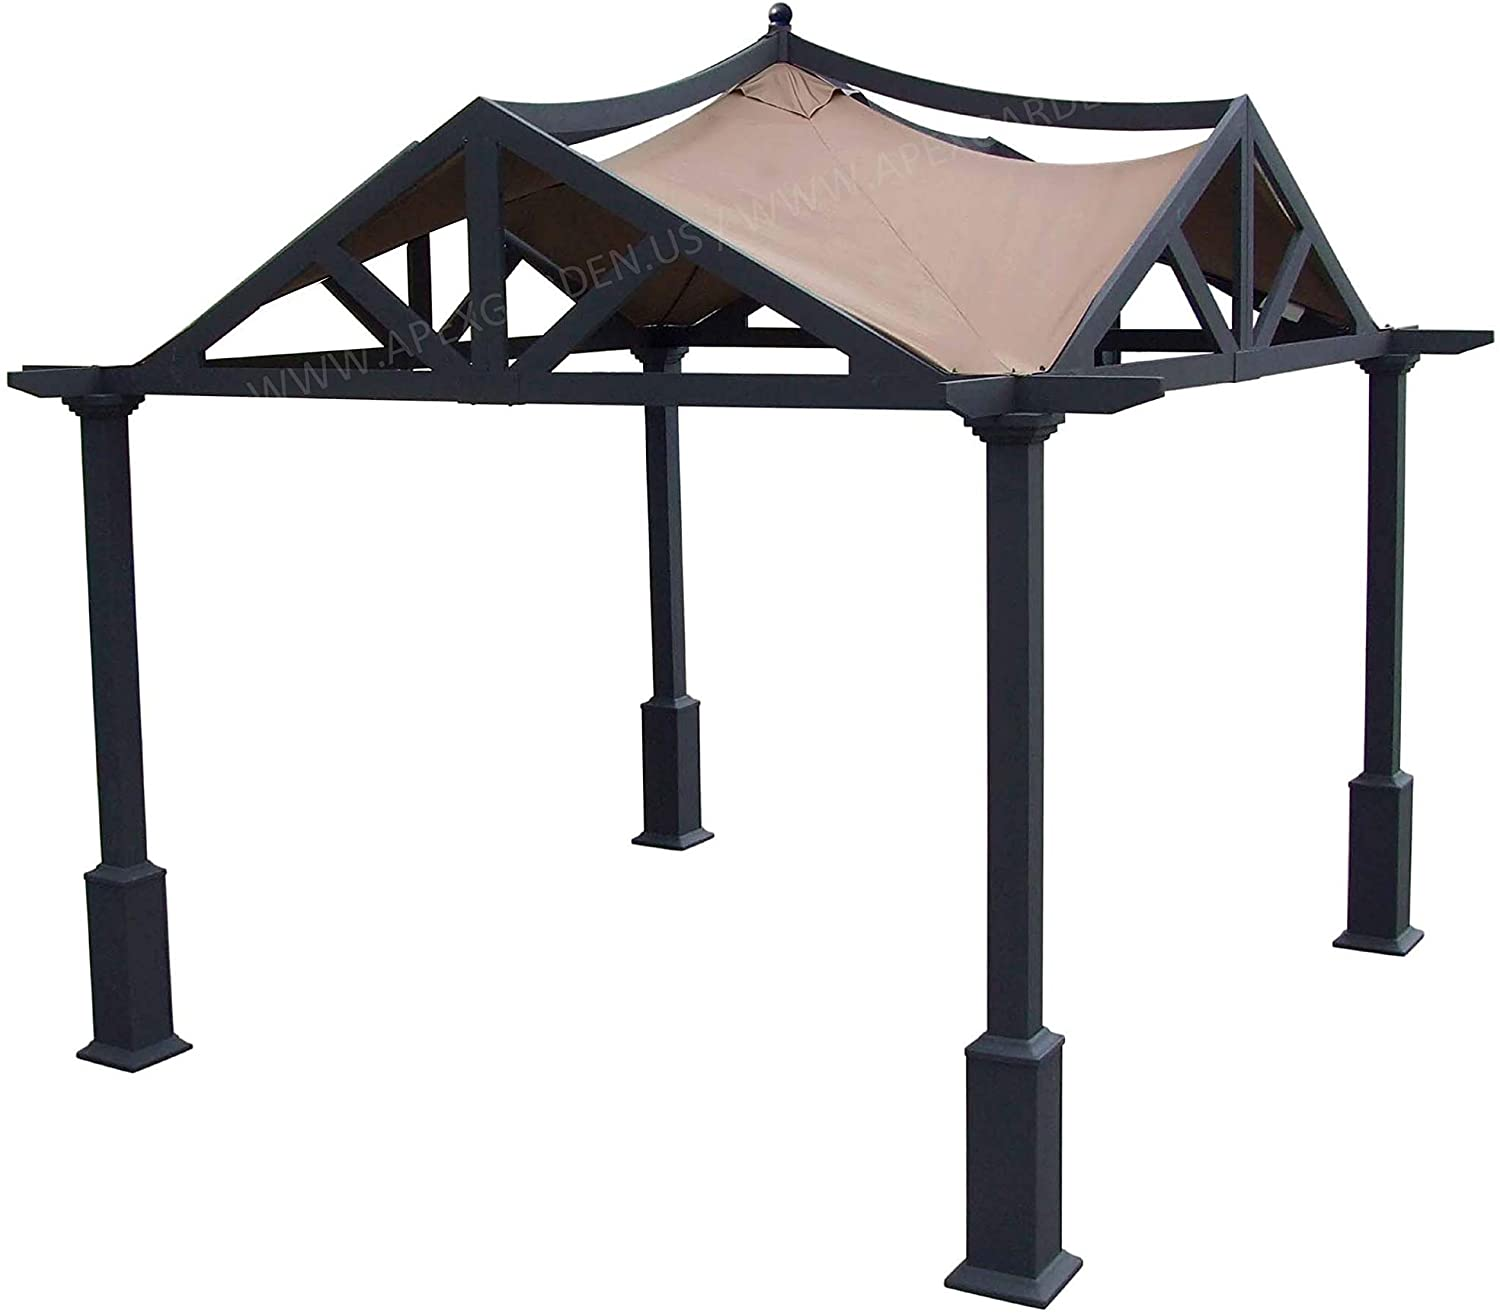 Amazon Com Apex Garden Replacement Canopy Top For Lowe S 10 Ft X Gazebo Gf 12s039b 9a037x Brown Outdoor